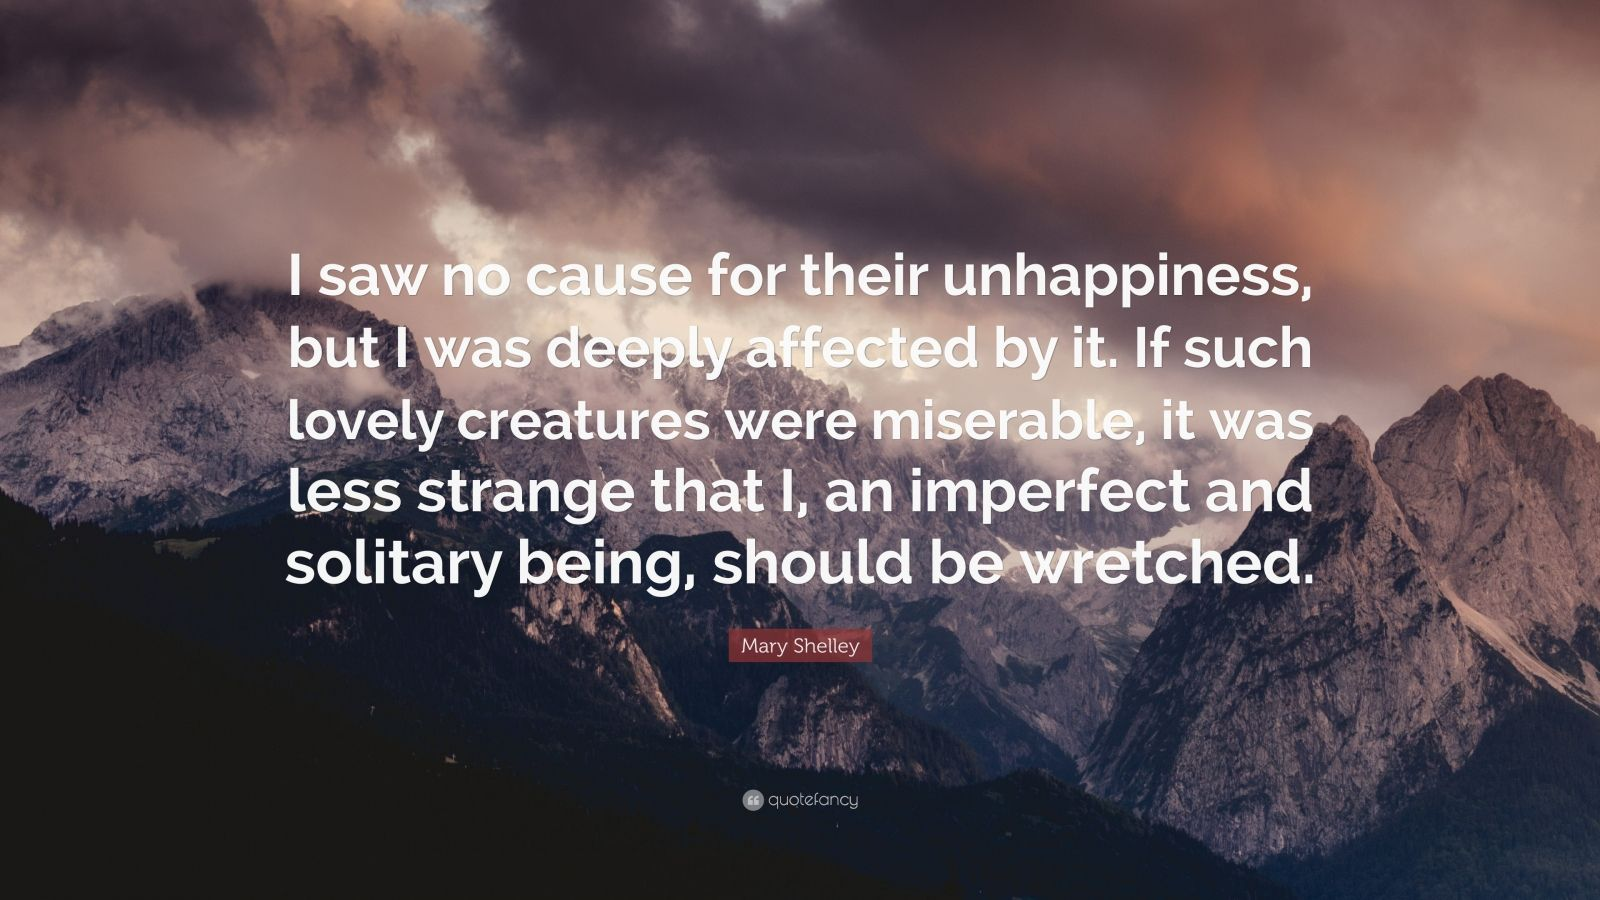 "Mary Shelley Quote: ""I saw no cause for their unhappiness, but I was deeply affected by it. If such lovely creatures were miserable, it was less strange that I, an imperfect and solitary being, should be wretched."""